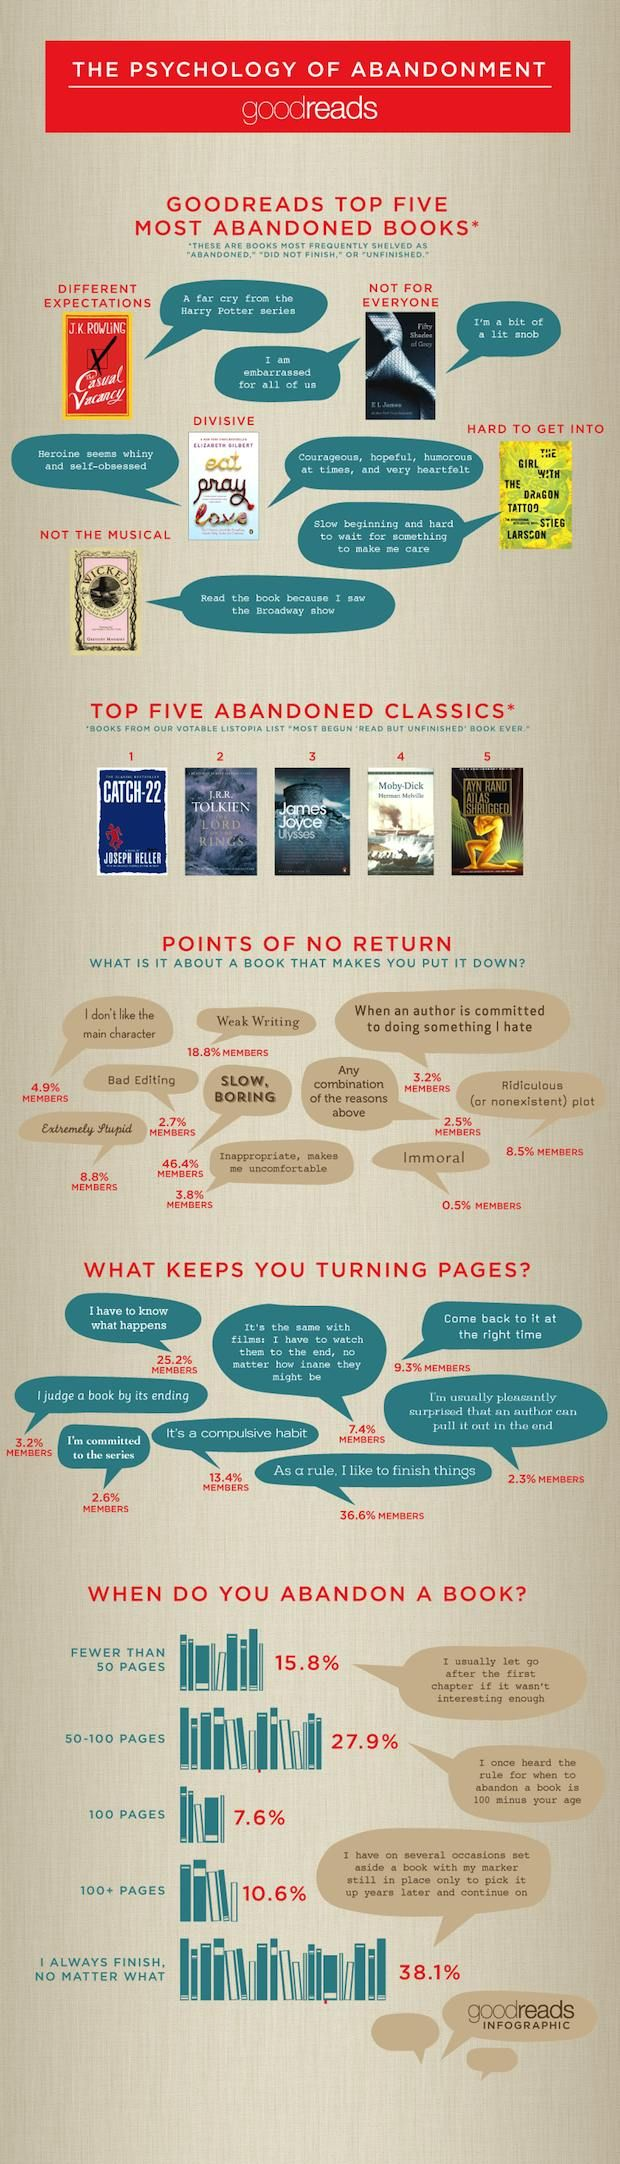 Infographic: What Makes You Put Down a Book?  --  Goodreads released a new infographic that answers the age old question that hounds authors everywhere: Why didn't readers finish my book?